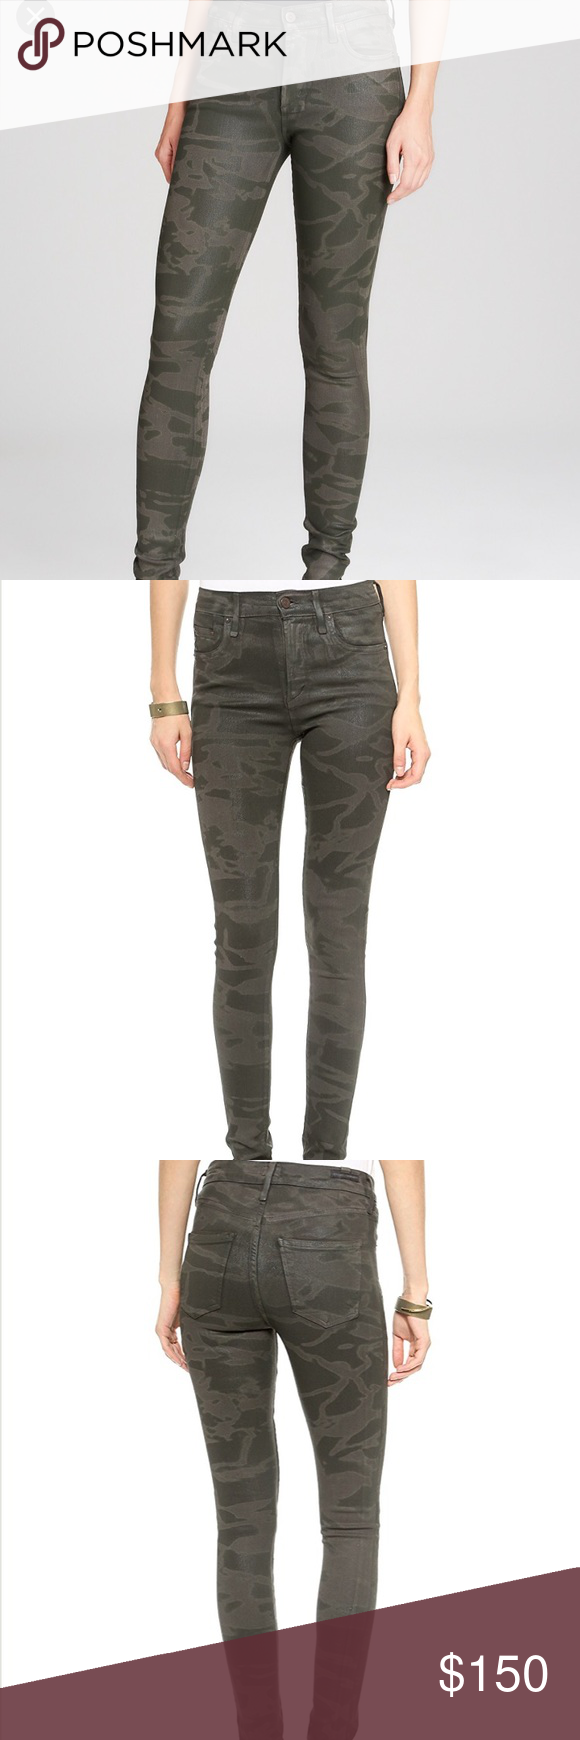 Rocket Leatherette Skinny Camo Jeans worn twice and in perfect condition. comfortable and flattering fit. true to size. Citizens Of Humanity Jeans Skinny